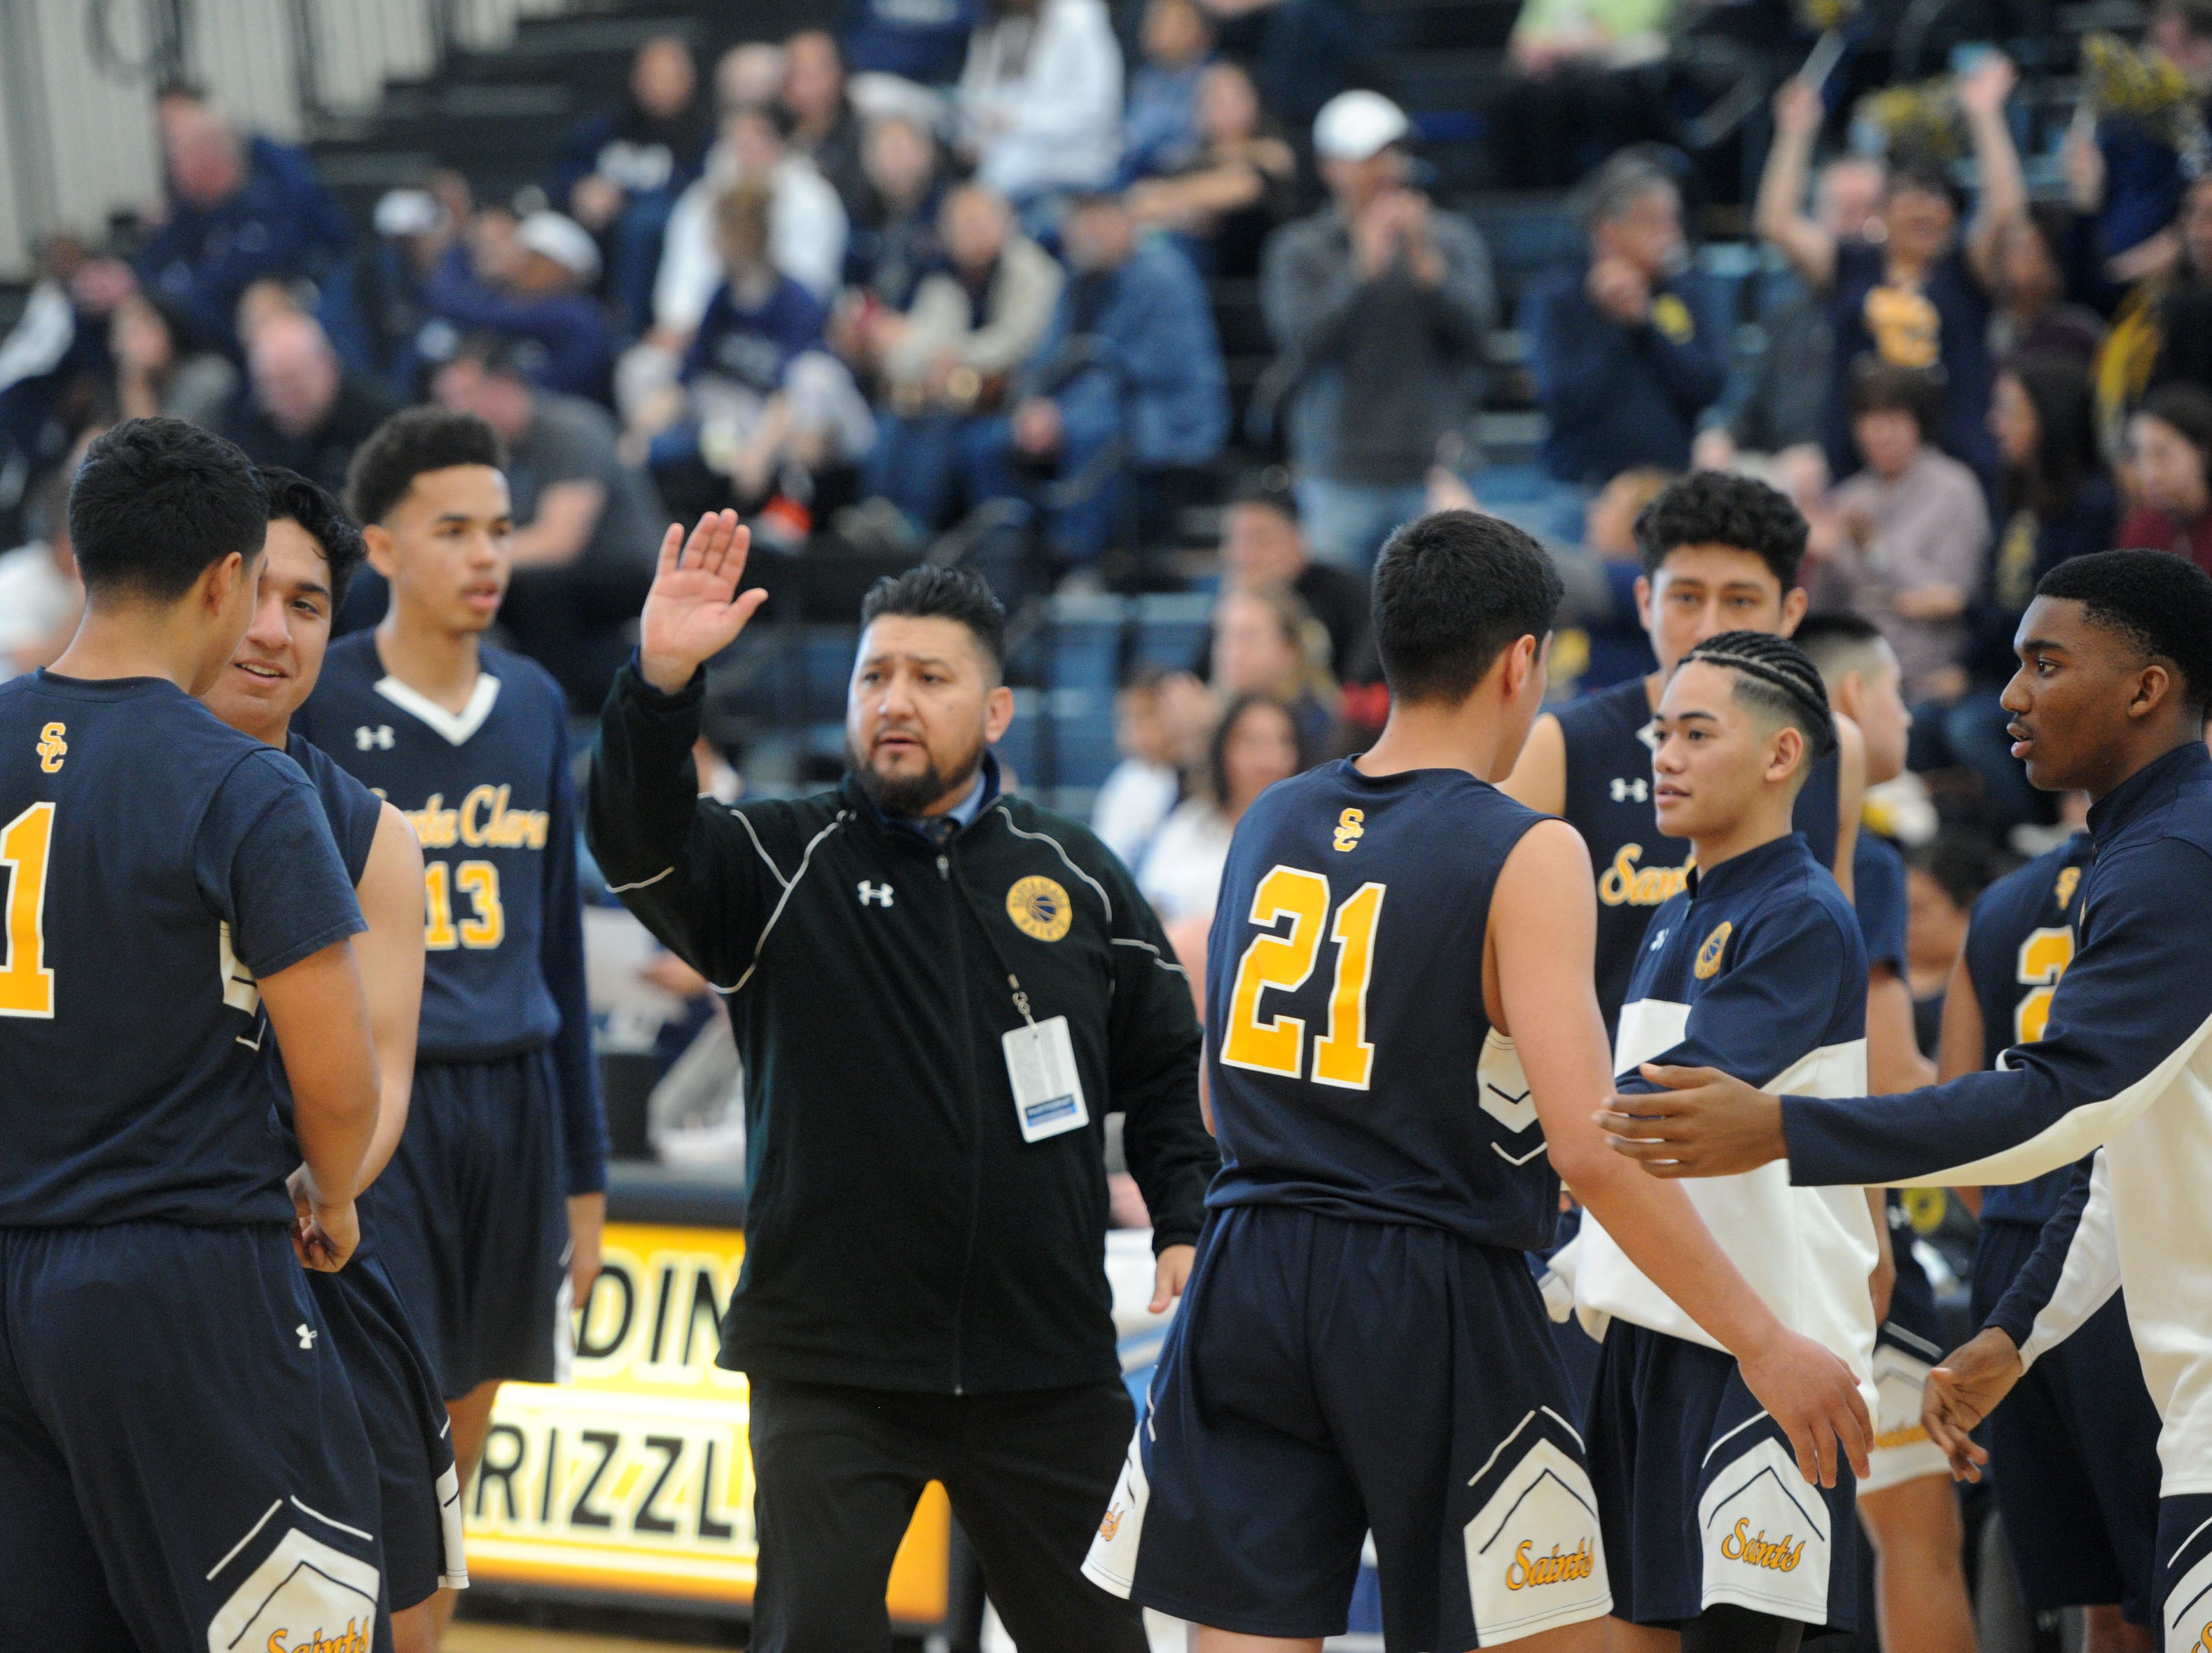 Head coach Bobby Tenorio high-fives his players during Santa Clara's 68-52 victory over Sage Hill in the CIF-SS Division 5AA boys basketball final Saturday at Godinez High in Santa Ana.